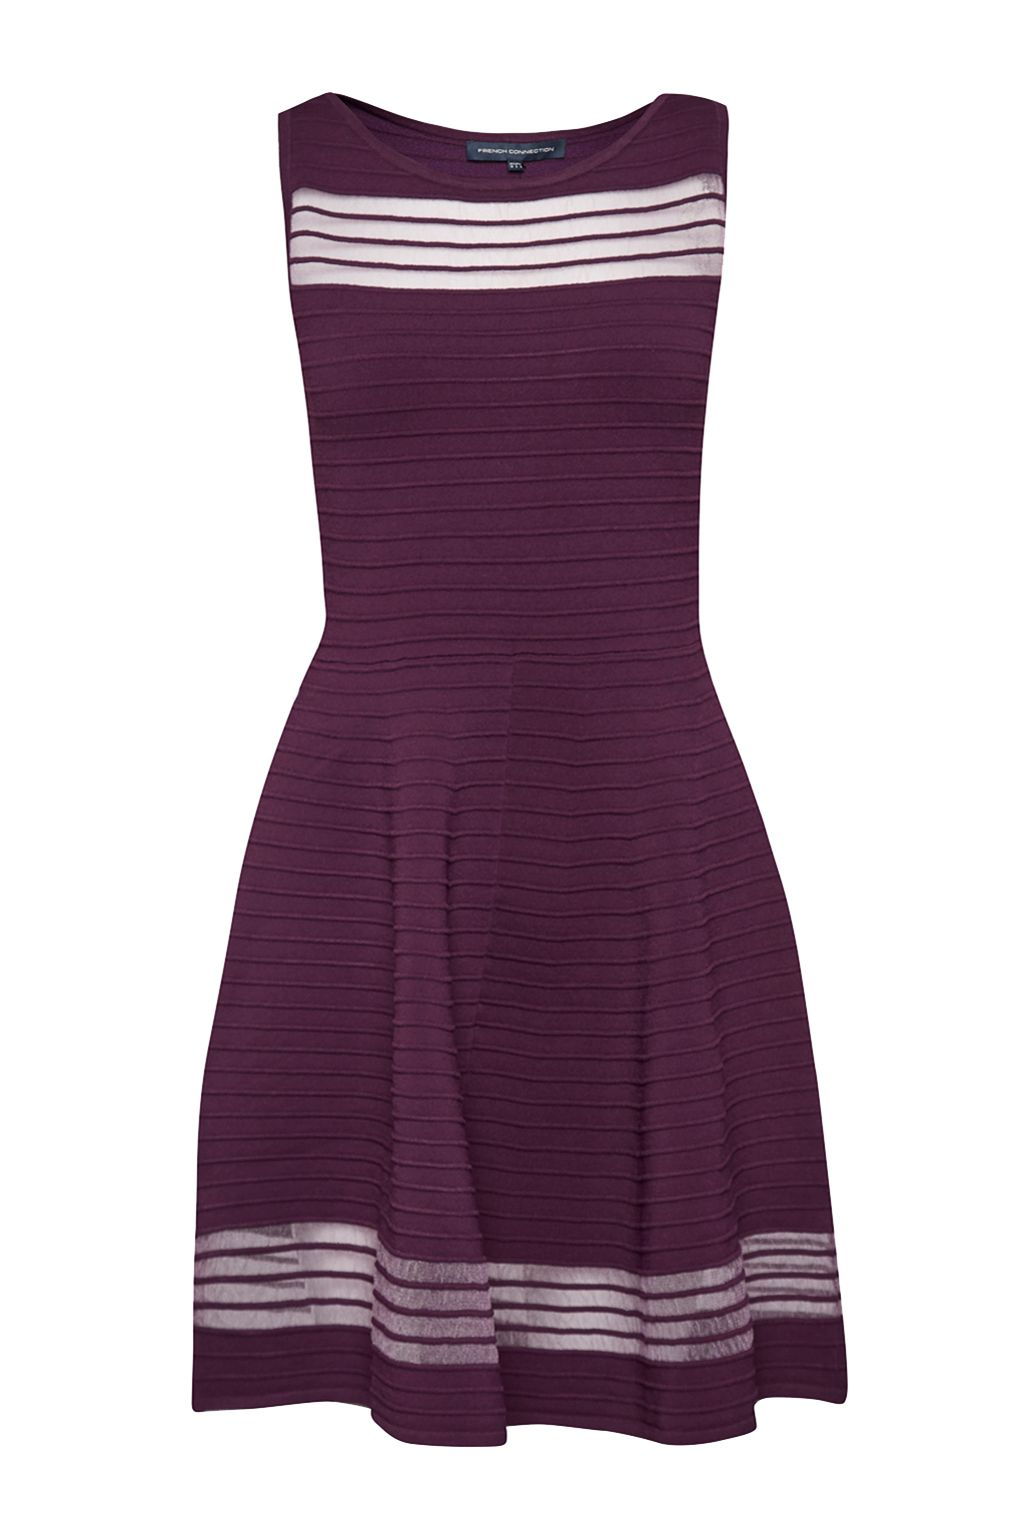 French Connection Tobey Crepe Knit  Skater Dress, Dark Purple